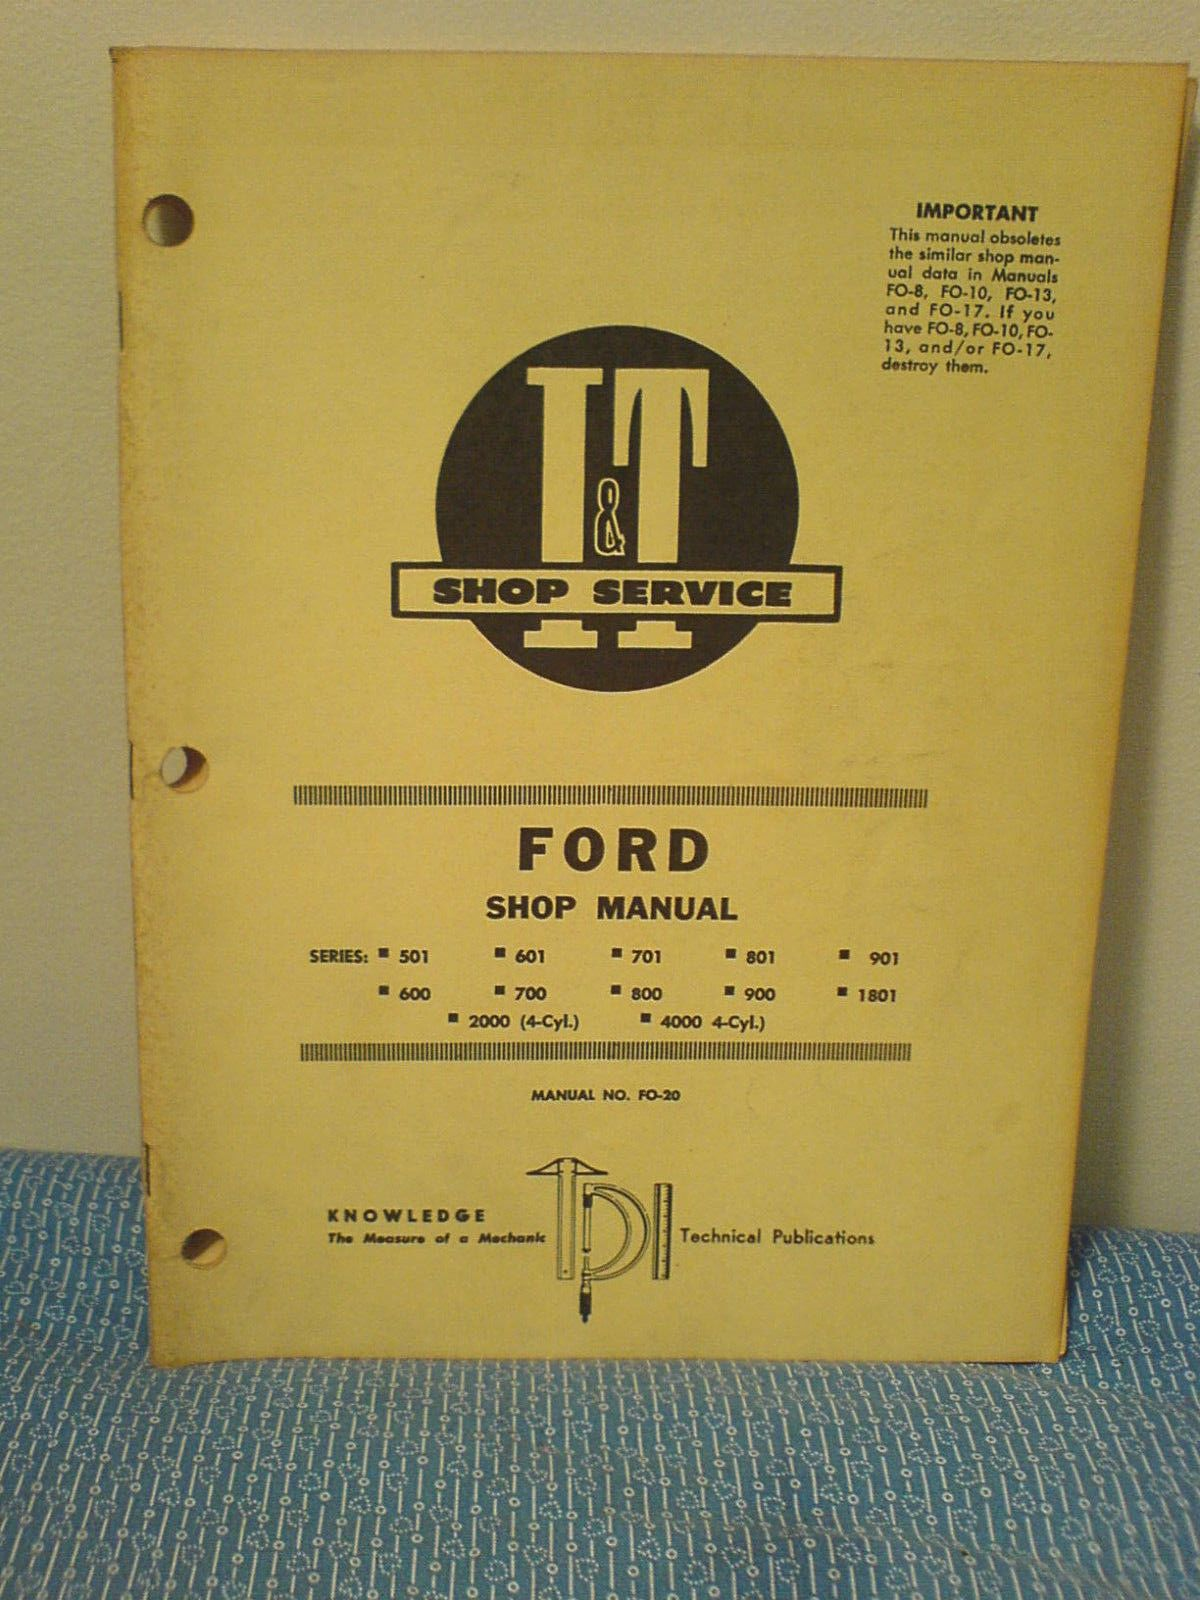 FORD 501 600 601 700 701 800 801 900 901 TRACTOR IT SHOP MANUAL FO-20 (eBay  Link)